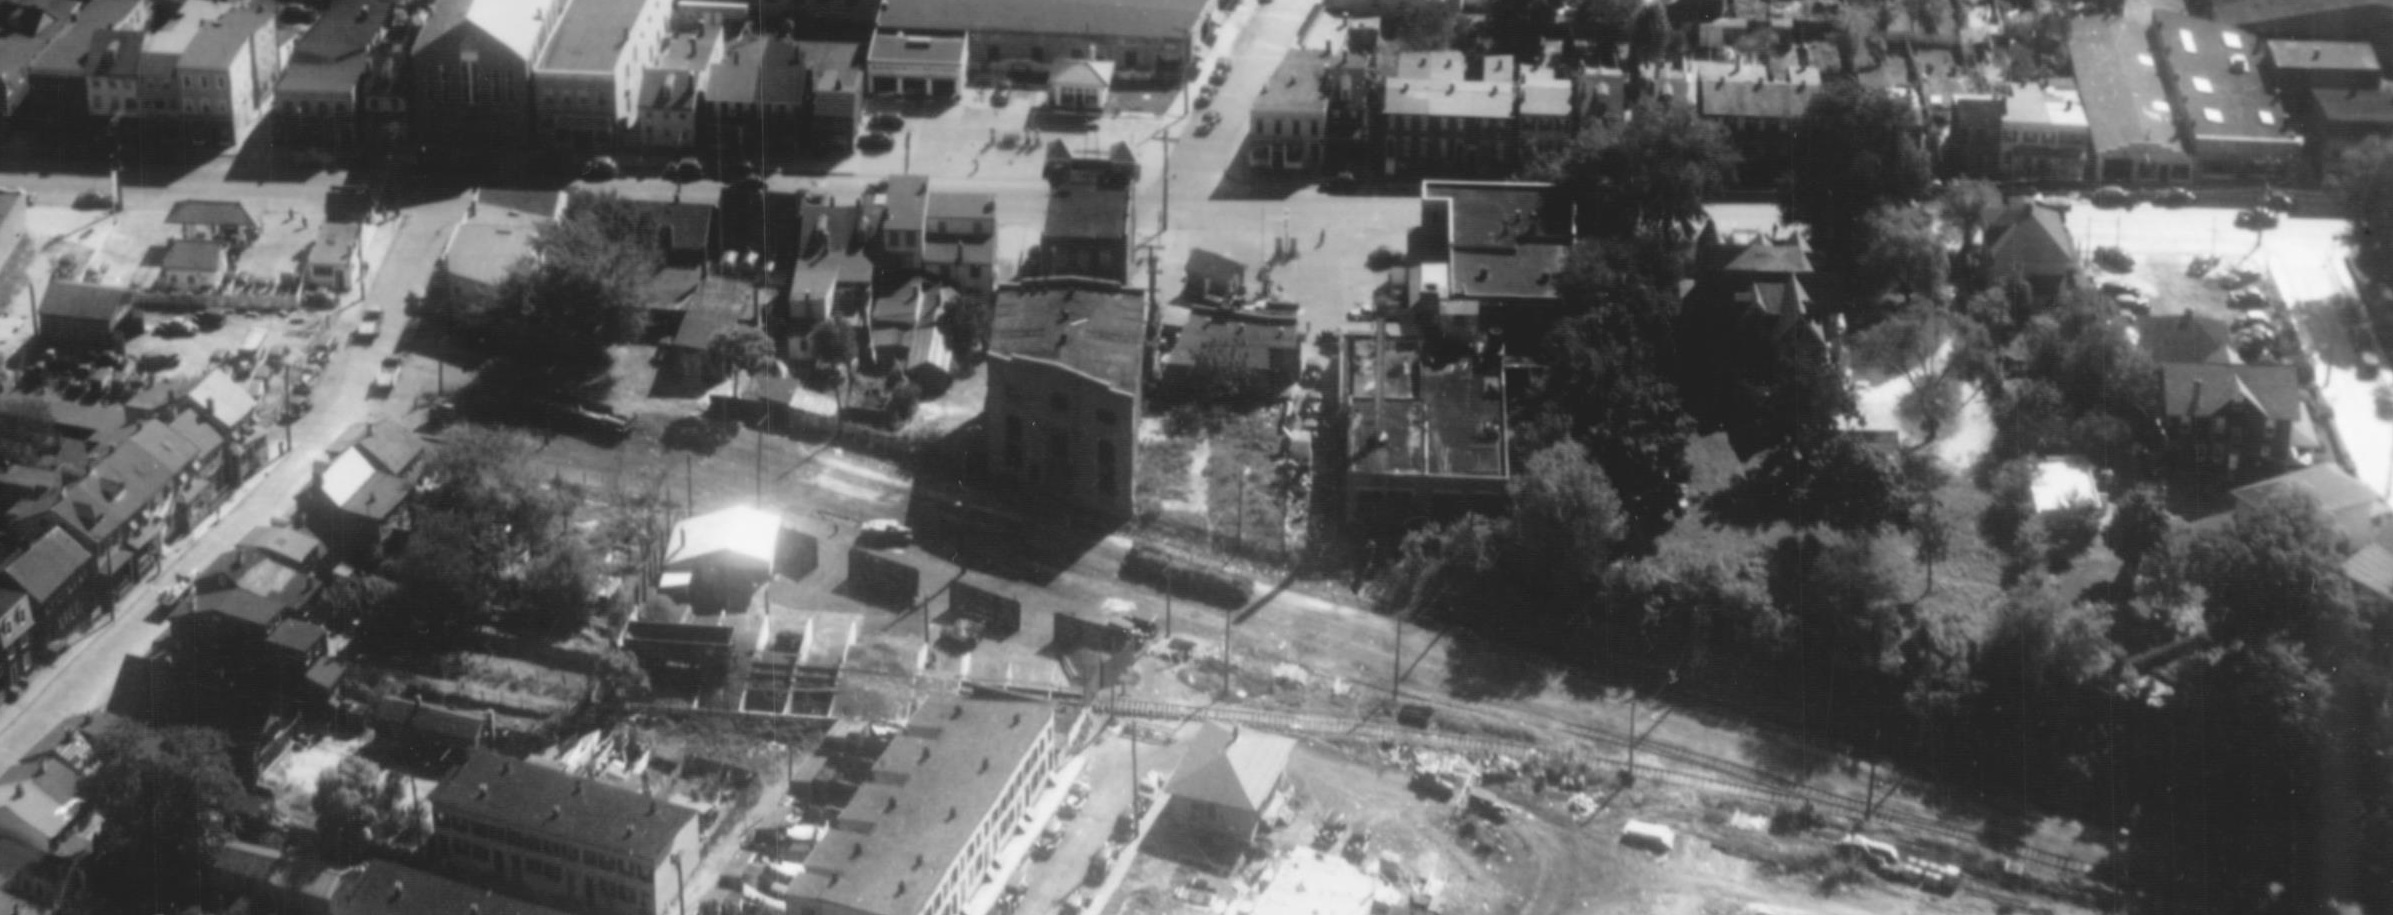 Looking at West Street and WB&A West Street Station. Annapolis, Maryland Date: Unknown. Source: Maryland State Archives.